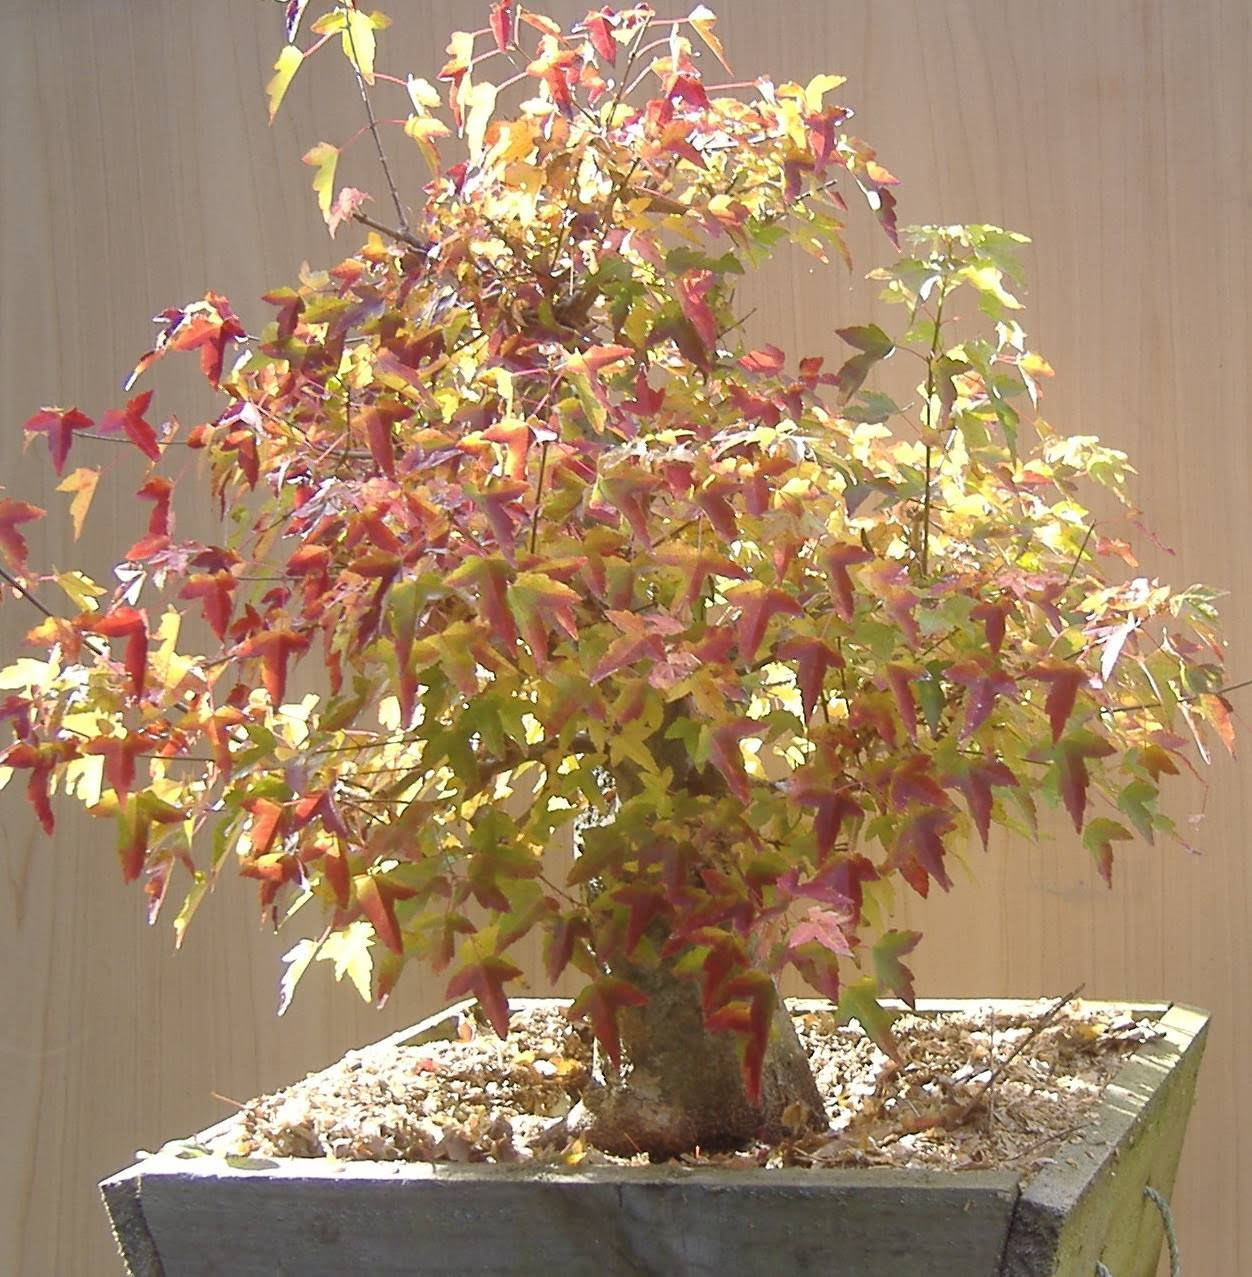 Fieldgrownbonsai Fernvalleybonsai Chinese Elm Bonsai Tree Wiring Especially In The Wide And Flat Timber Boxes Trees Rapidly Develop Secondary Branches Regular Can Commence